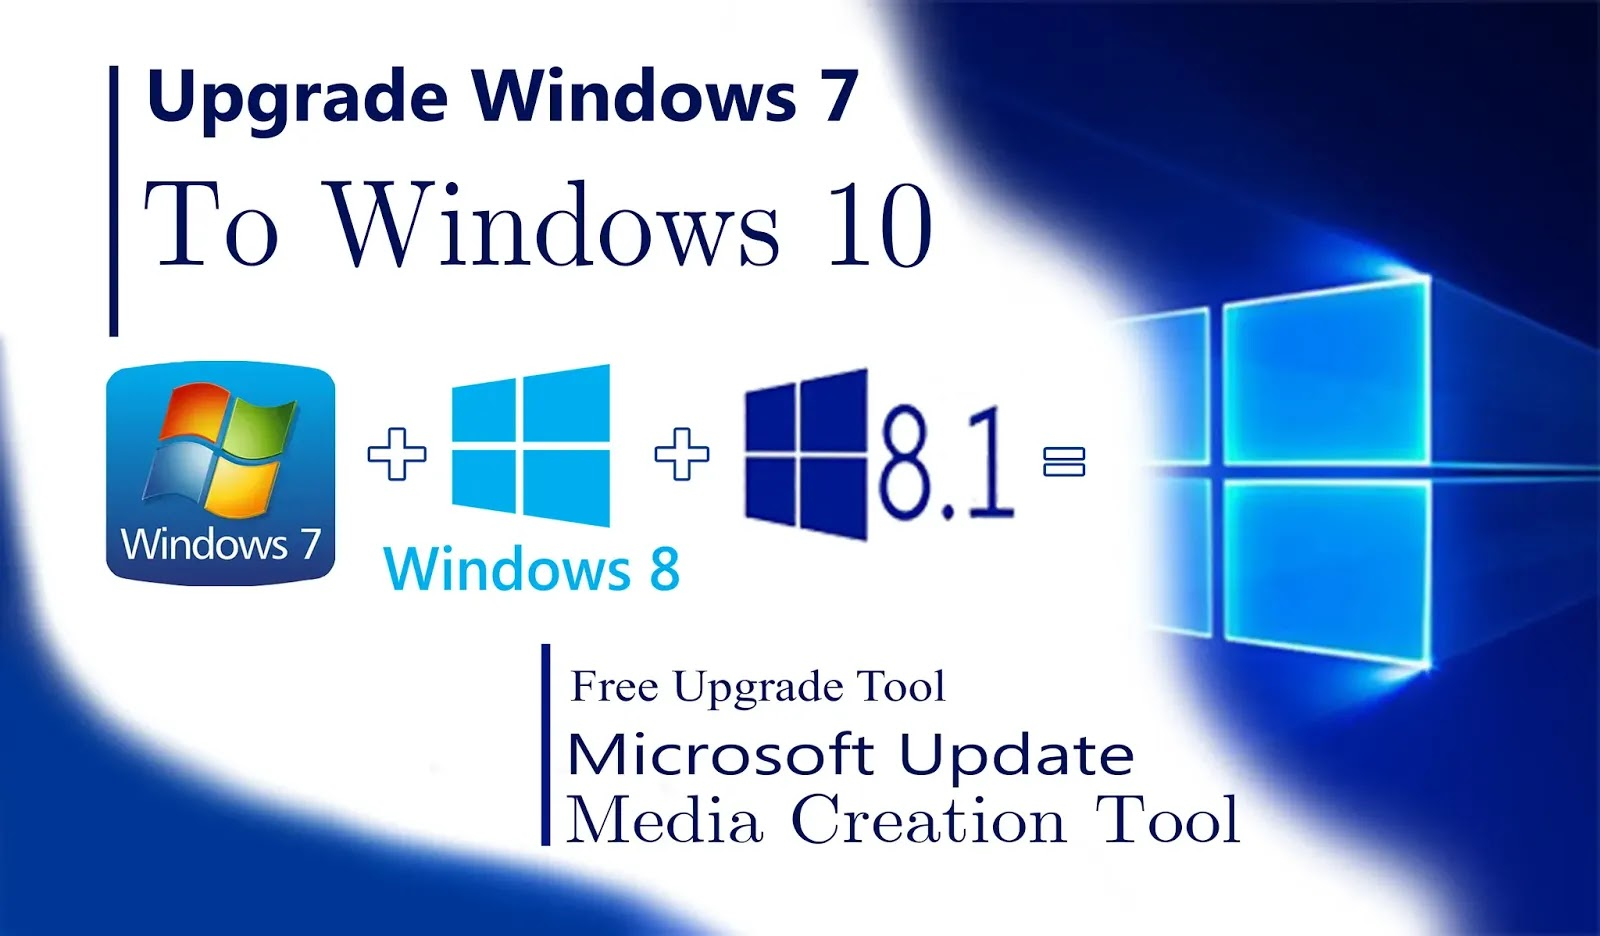 Start updating windows 7 to windows 10,upgrade windows 7 to windows 10,free upgrade tool,microsoft update,media creation tool,windows 7+windows 8+windows 8.1=,windows 10,blue light coming through glass window on the right side,text written in white background through between blue background,